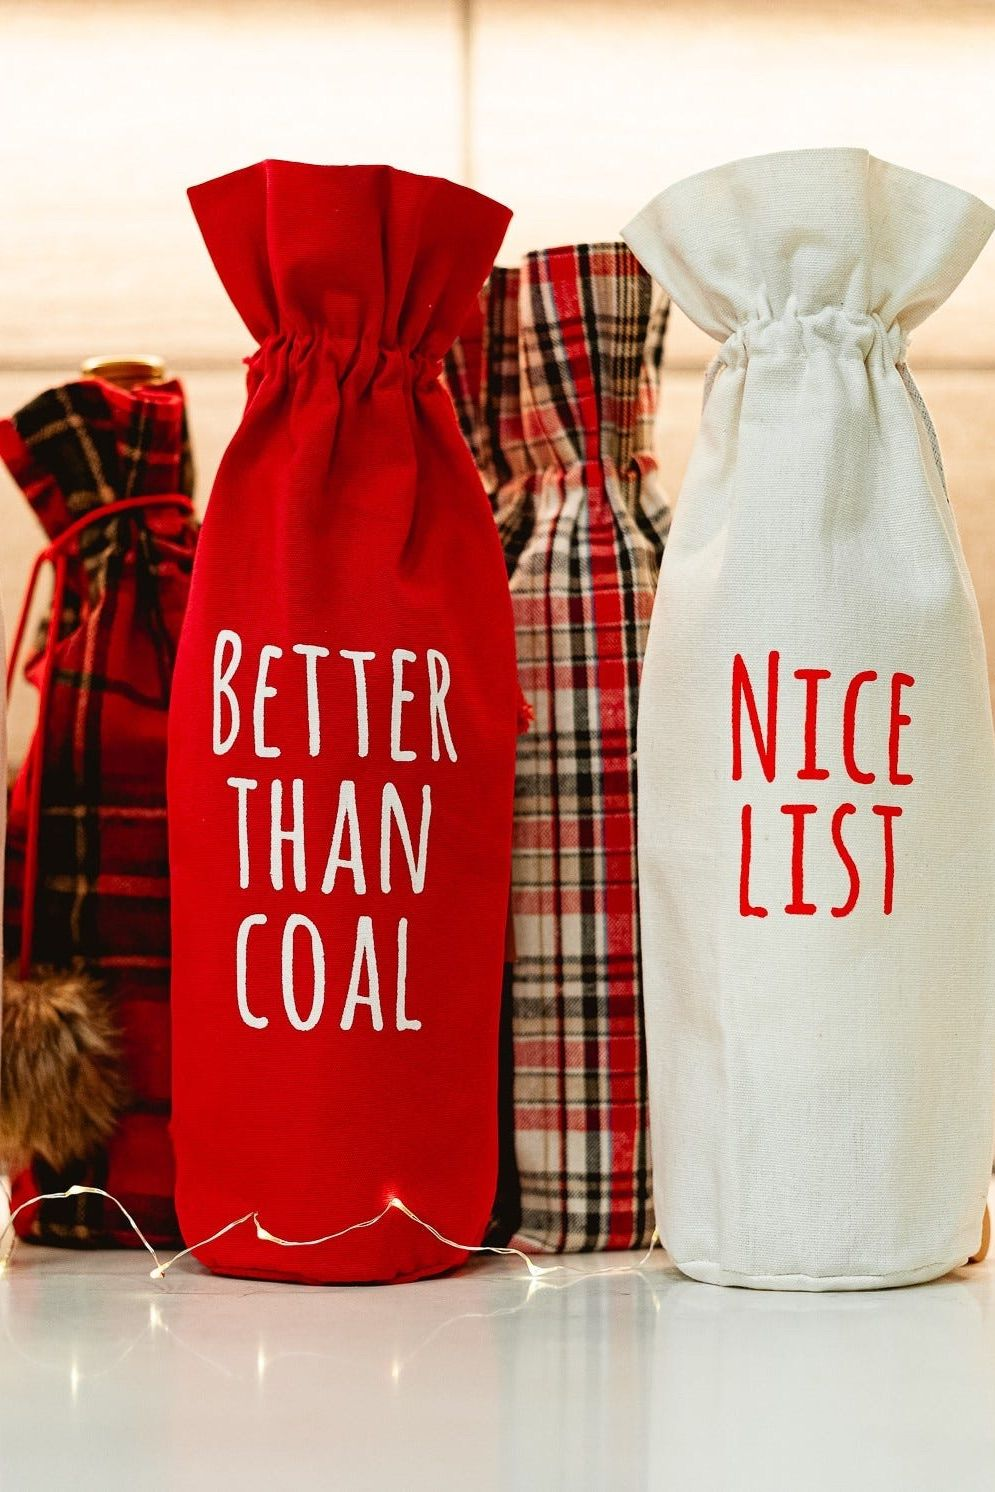 Don't show up to your next gather empty handed. Check out our favorite hostess gifts that will ensure you make it to the top of the invite list every time. #hostessgifts #gifts #giftguide #holidays #thanksgiving #giftideas